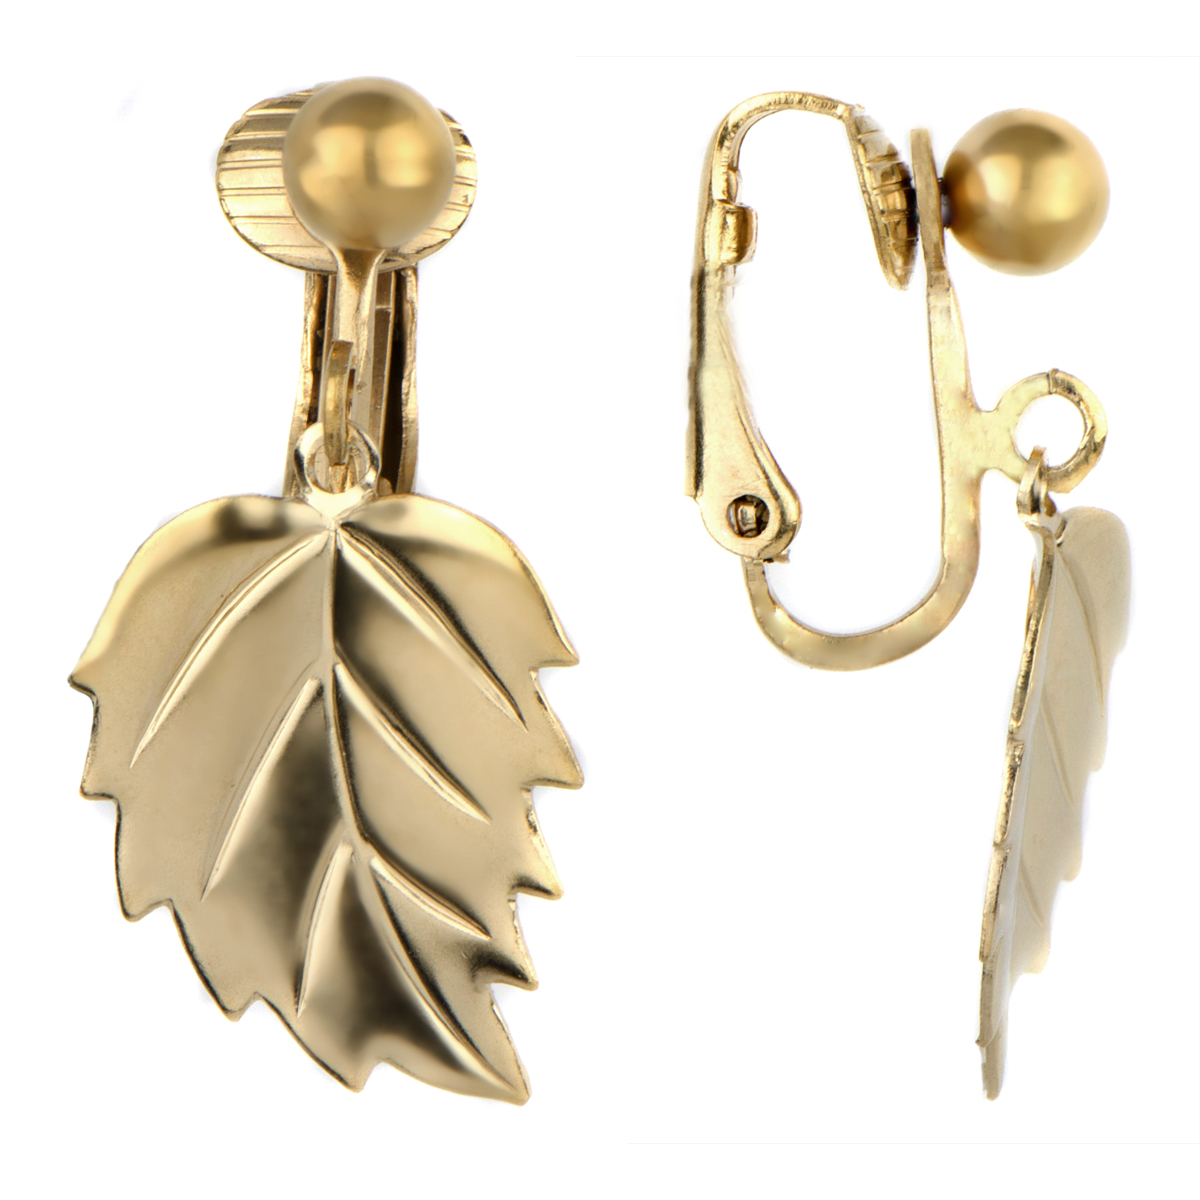 Mellie's Goldtone Dangle Leaf Clip On Earrings Roll Off Image To Close  Zoom Window